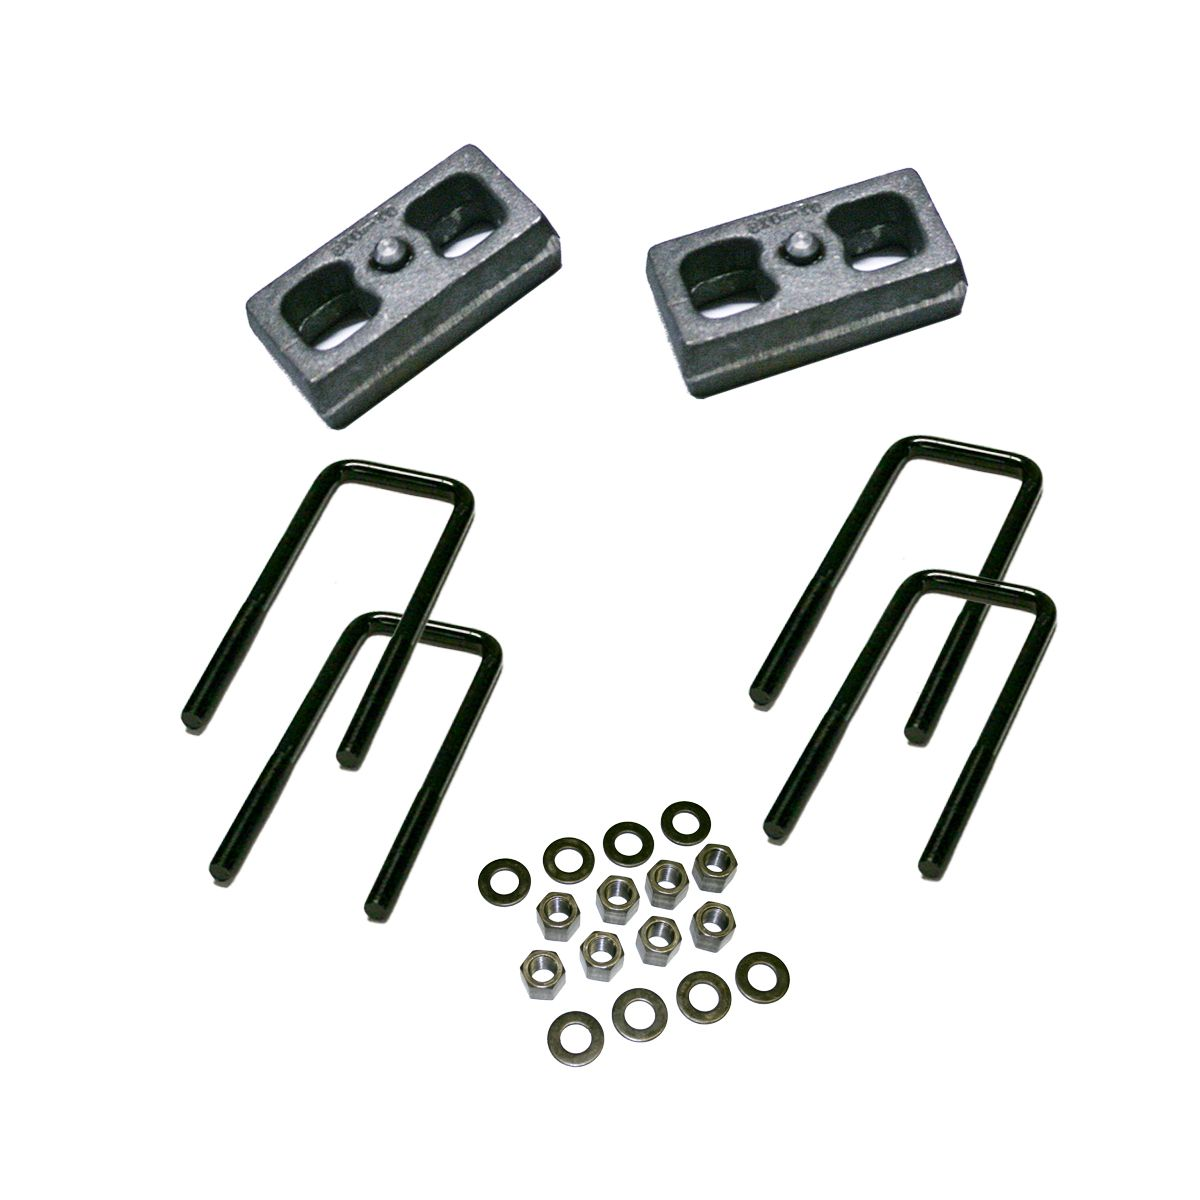 "1.5"" Rear Block Kit for 1979-1995 Toyota Pickup with 2.5"" Wide Ubolts and 1979-1986 4-Runner"